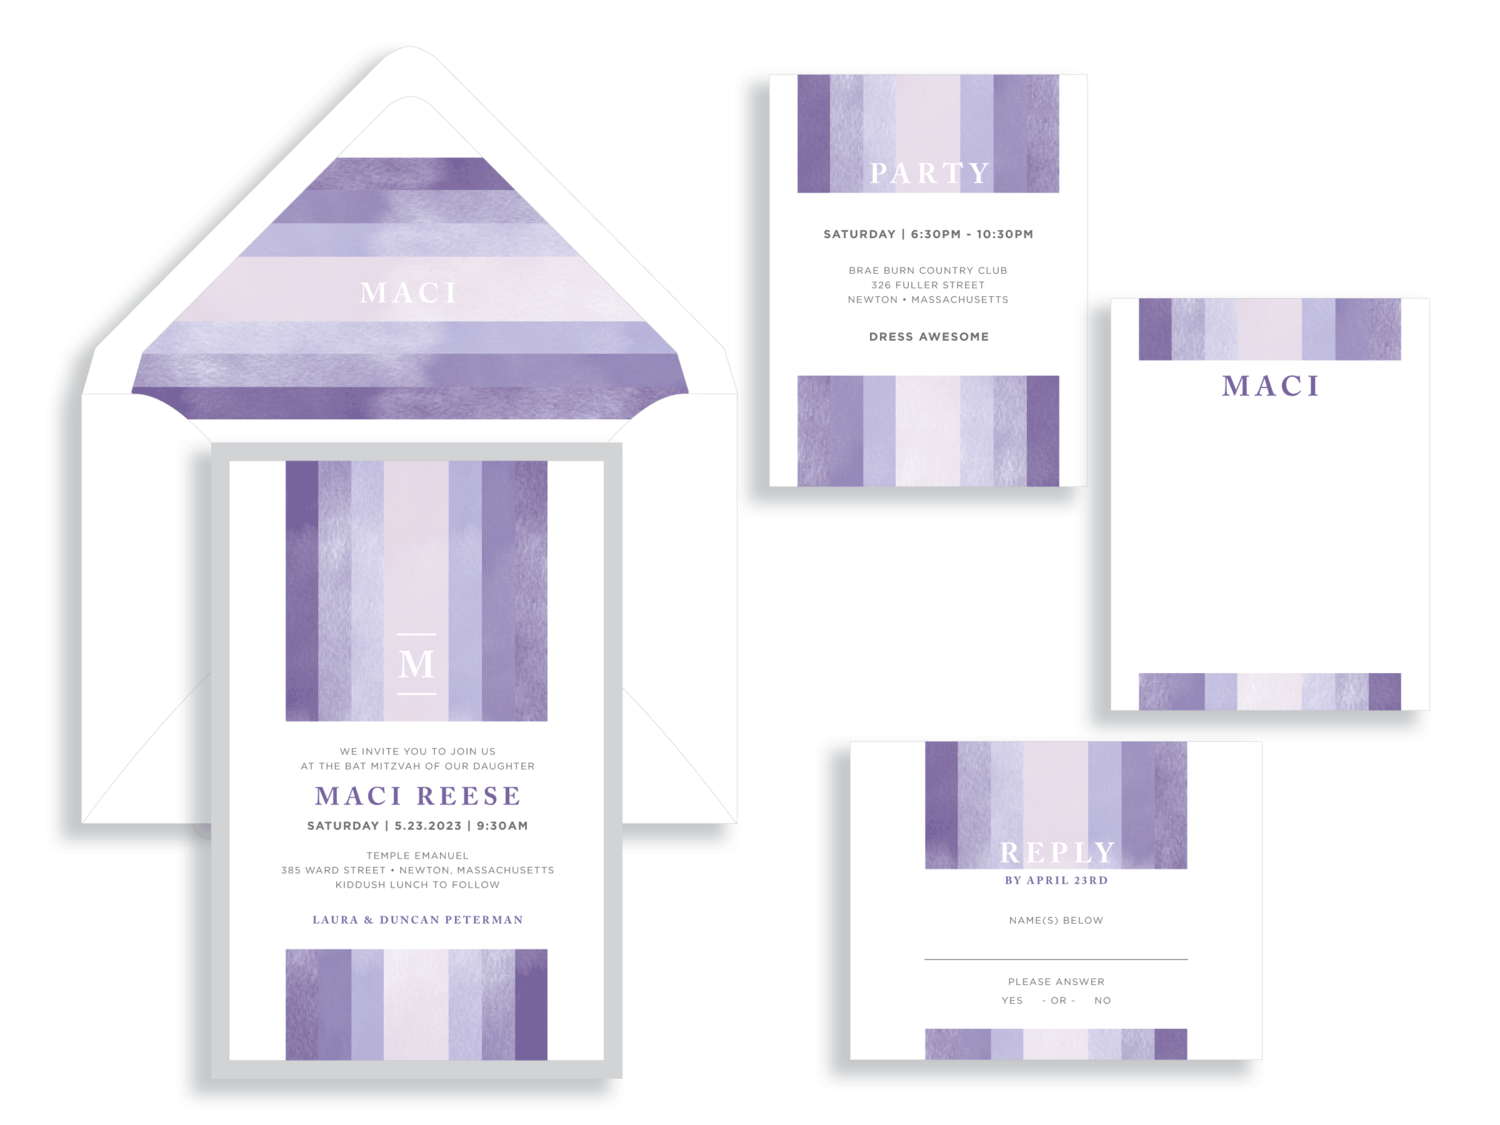 Maci striped Bat Mitzvah invitation in purple and silver.  Bat Mitzvah invitations Northern Virginia Fairfax.